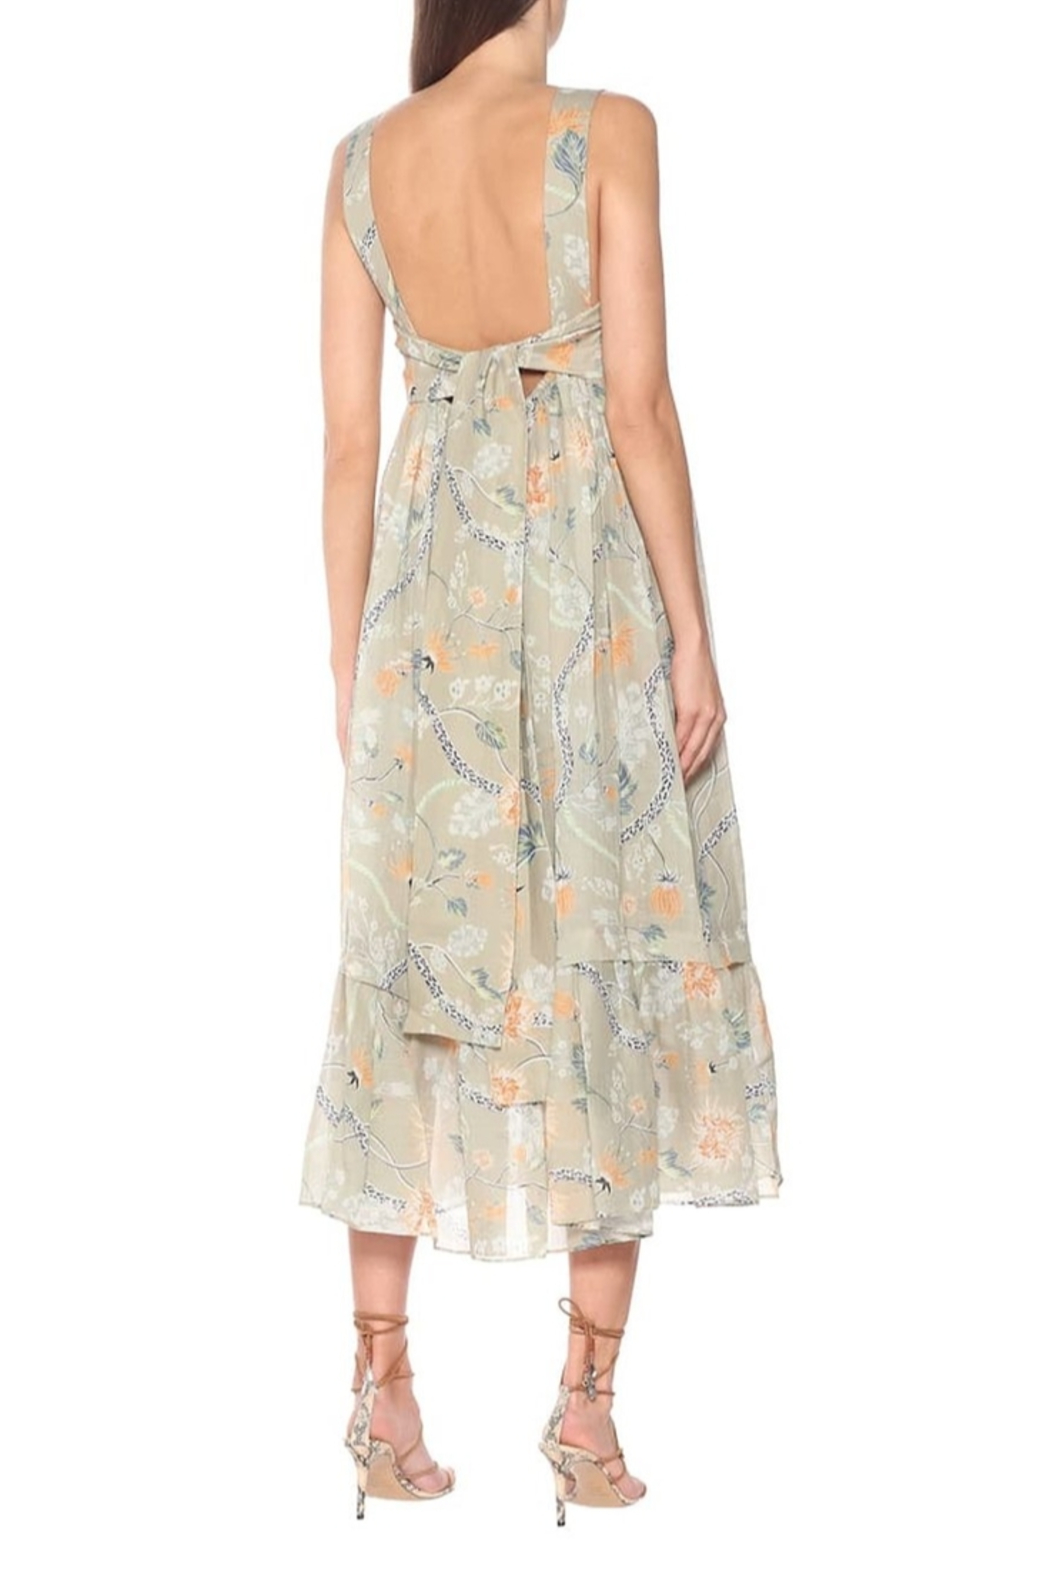 Chloe Thin Strap Low Back Floral Maxi Dress - Front Full Image